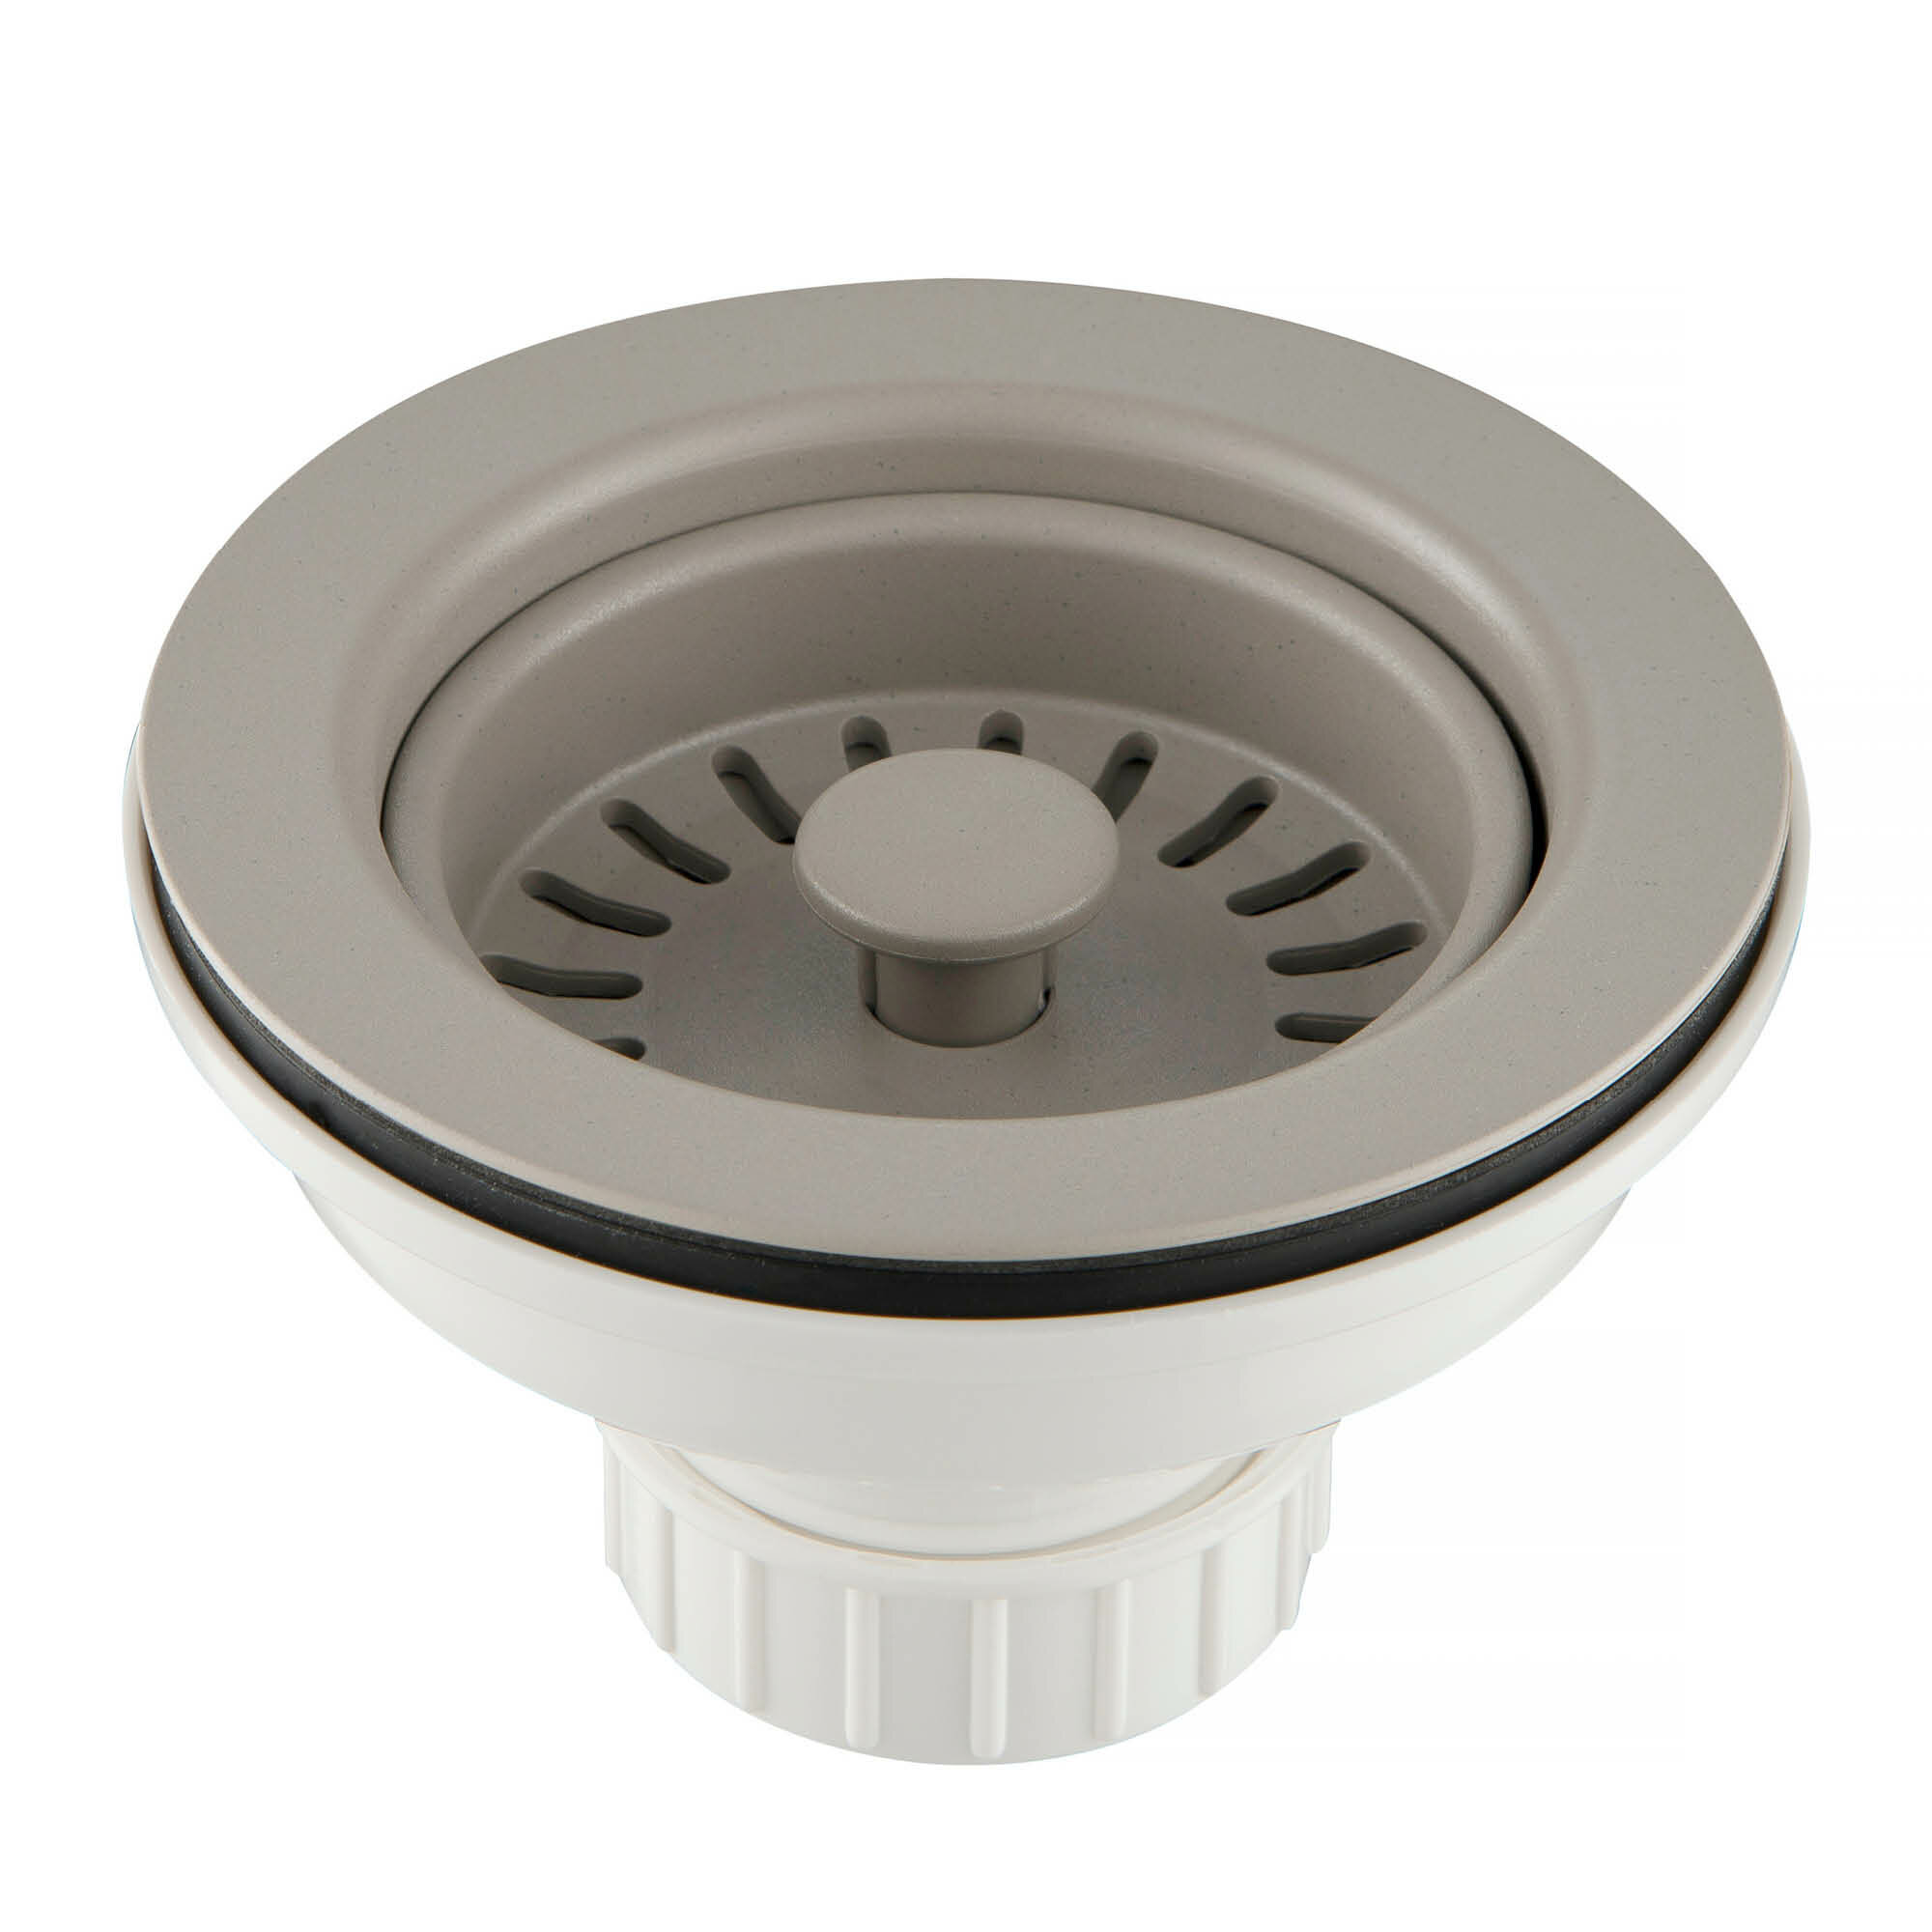 Kitchen Sink Strainer Drain Stopper